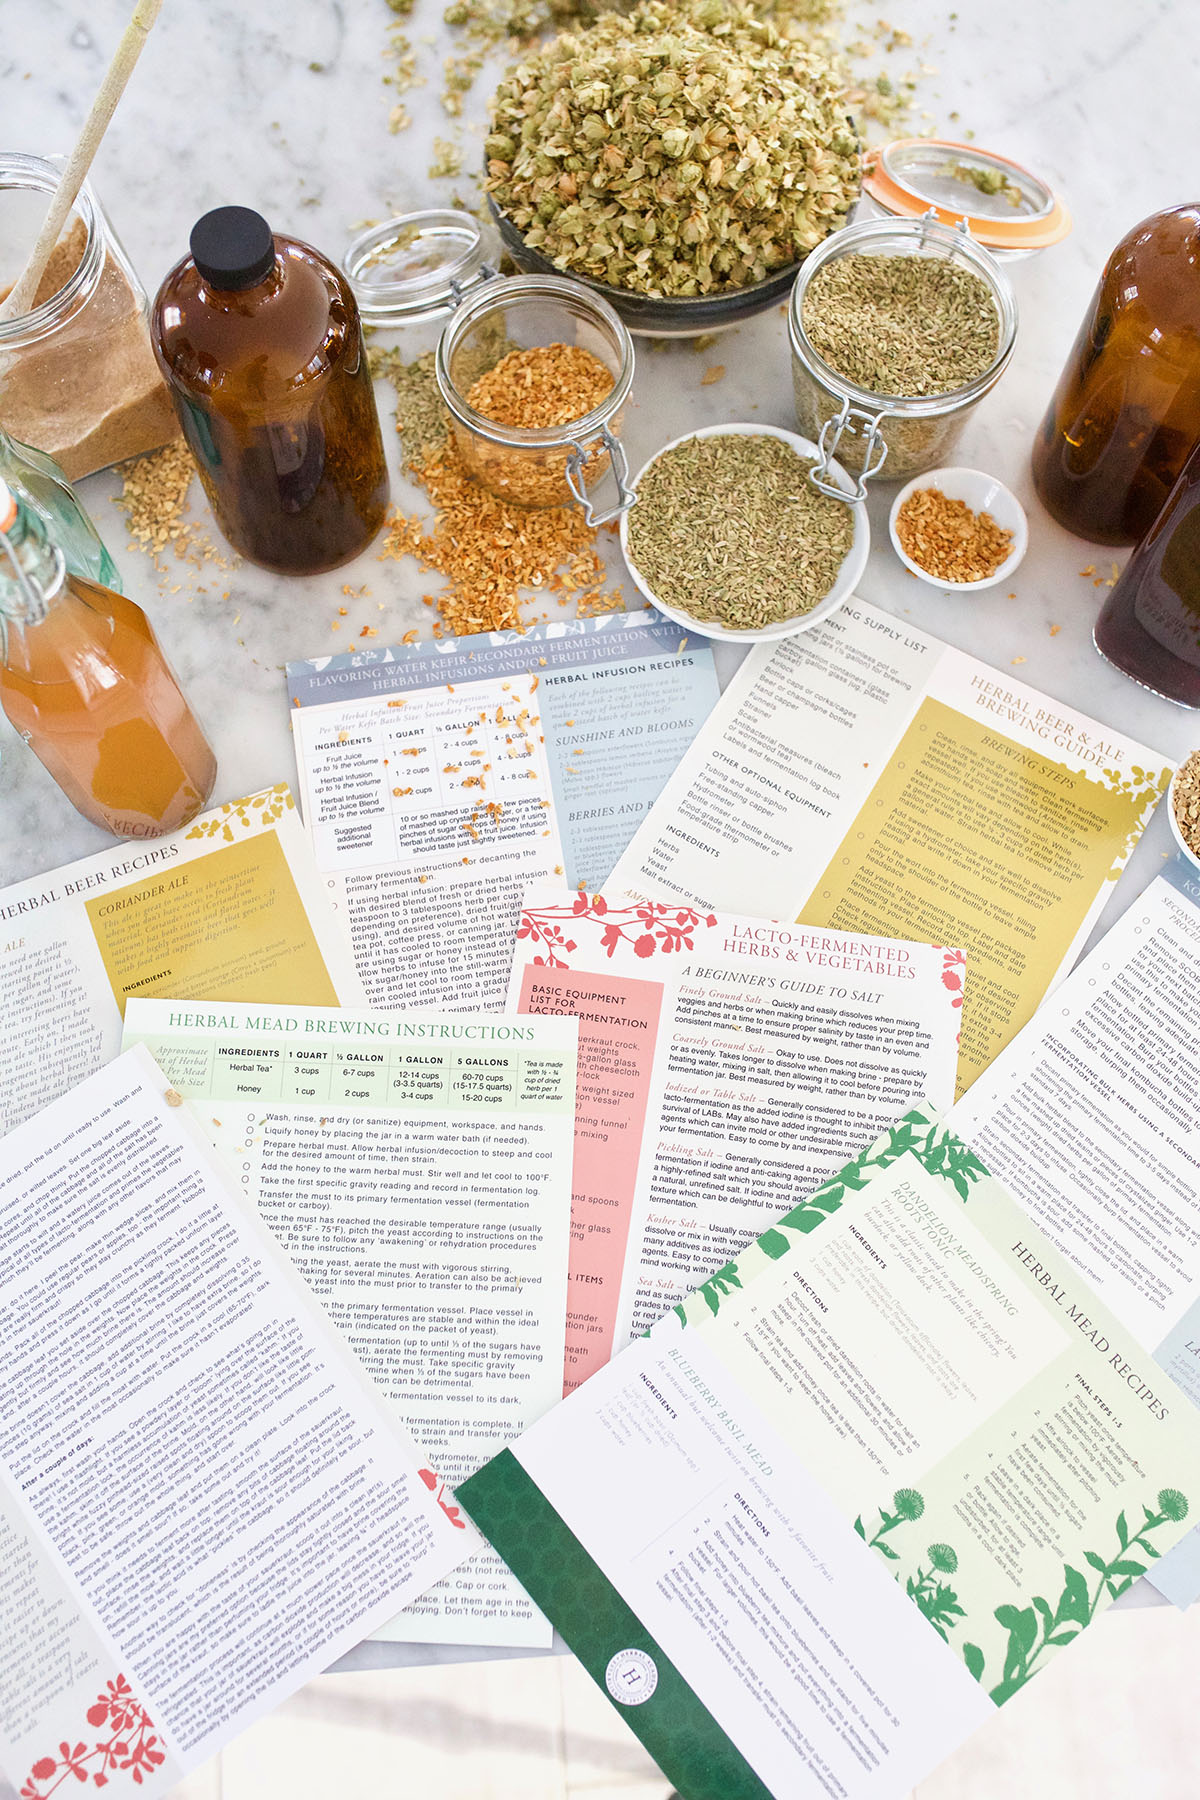 We're Having An Herbal Spring Sale & Giveaway! | Herbal Academy | Our entire Goods Shop is on sale just in time for, including our popular Herbal Materia Medica Short Course. Plus, we're giving away over $300 in prizes. Come shop the sale and enter to win some herbal goodies!